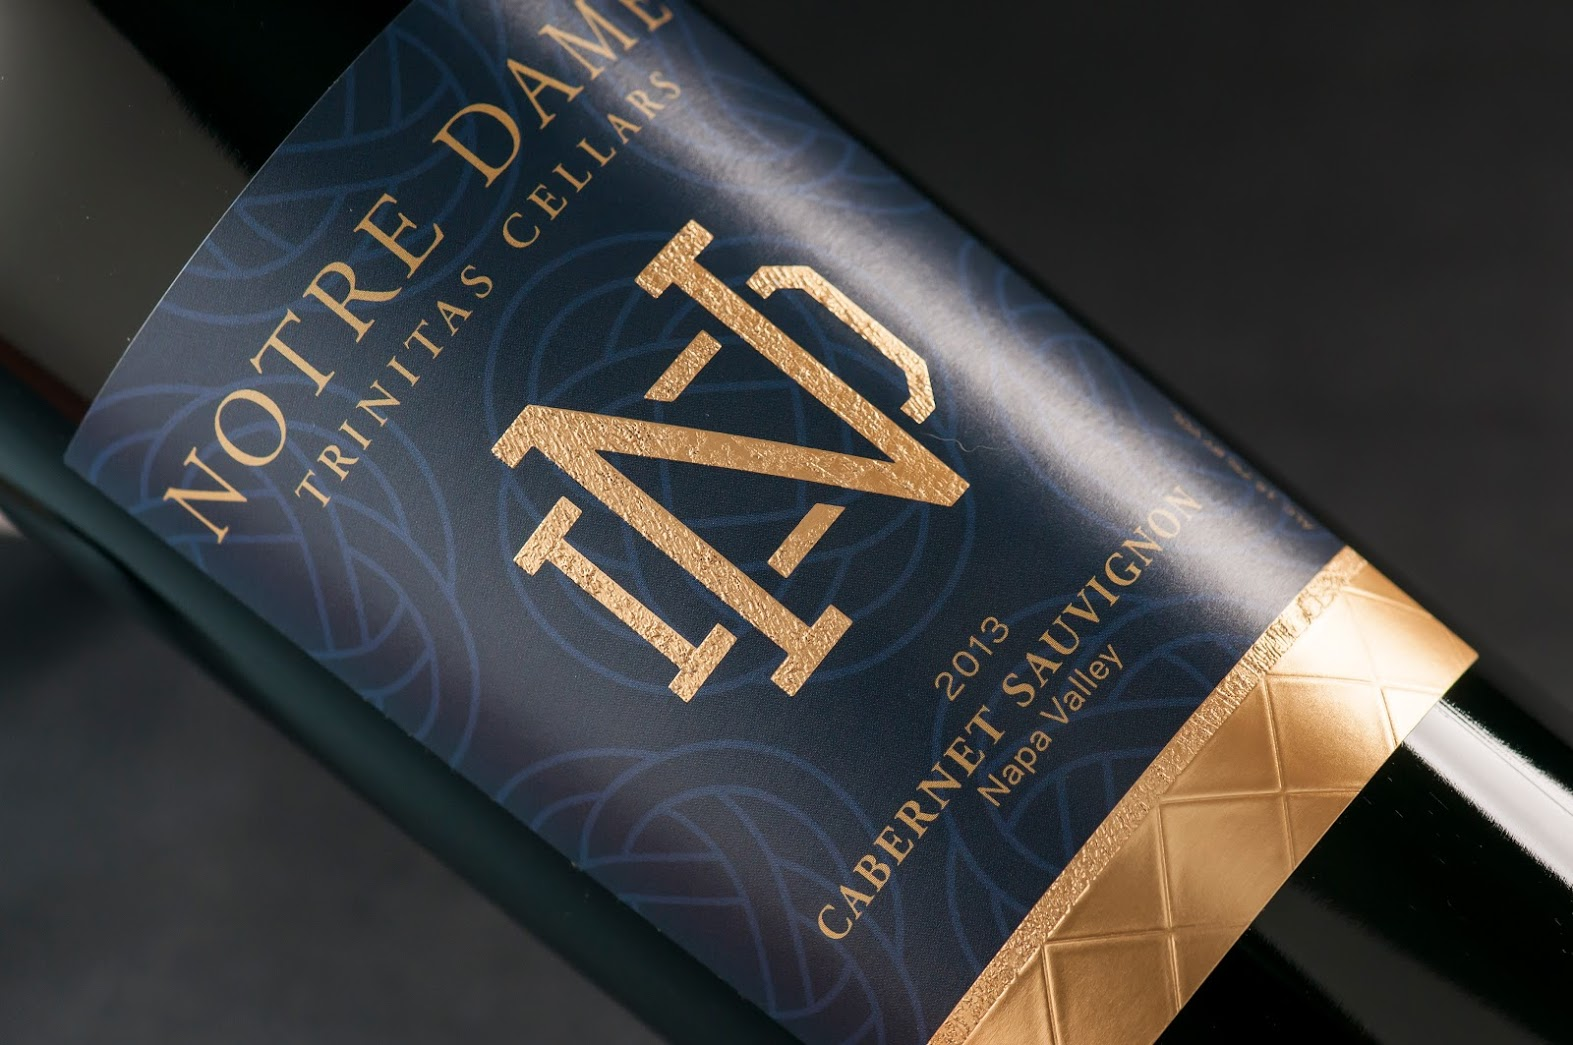 Notre Dame wine label design